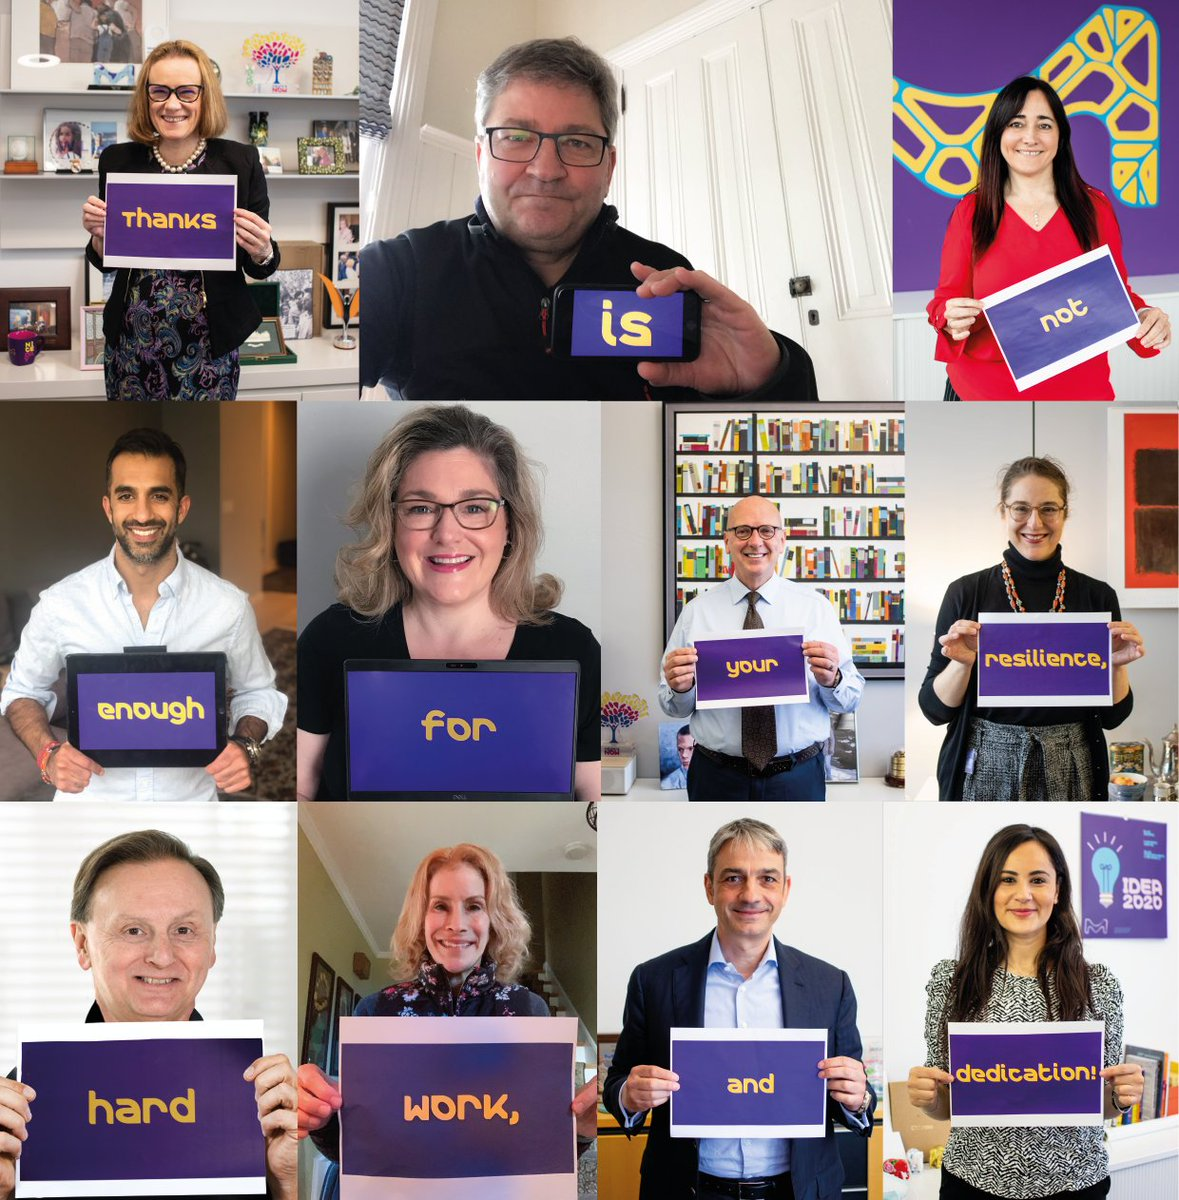 On #InternationalNursesDay, our global Healthcare Leadership Team thanks those working in the #healthcare sector for their #resilience, hard work & #dedication every day and esp during these current times. #RememberHealthHeroes #NursesDay #Nurses2020